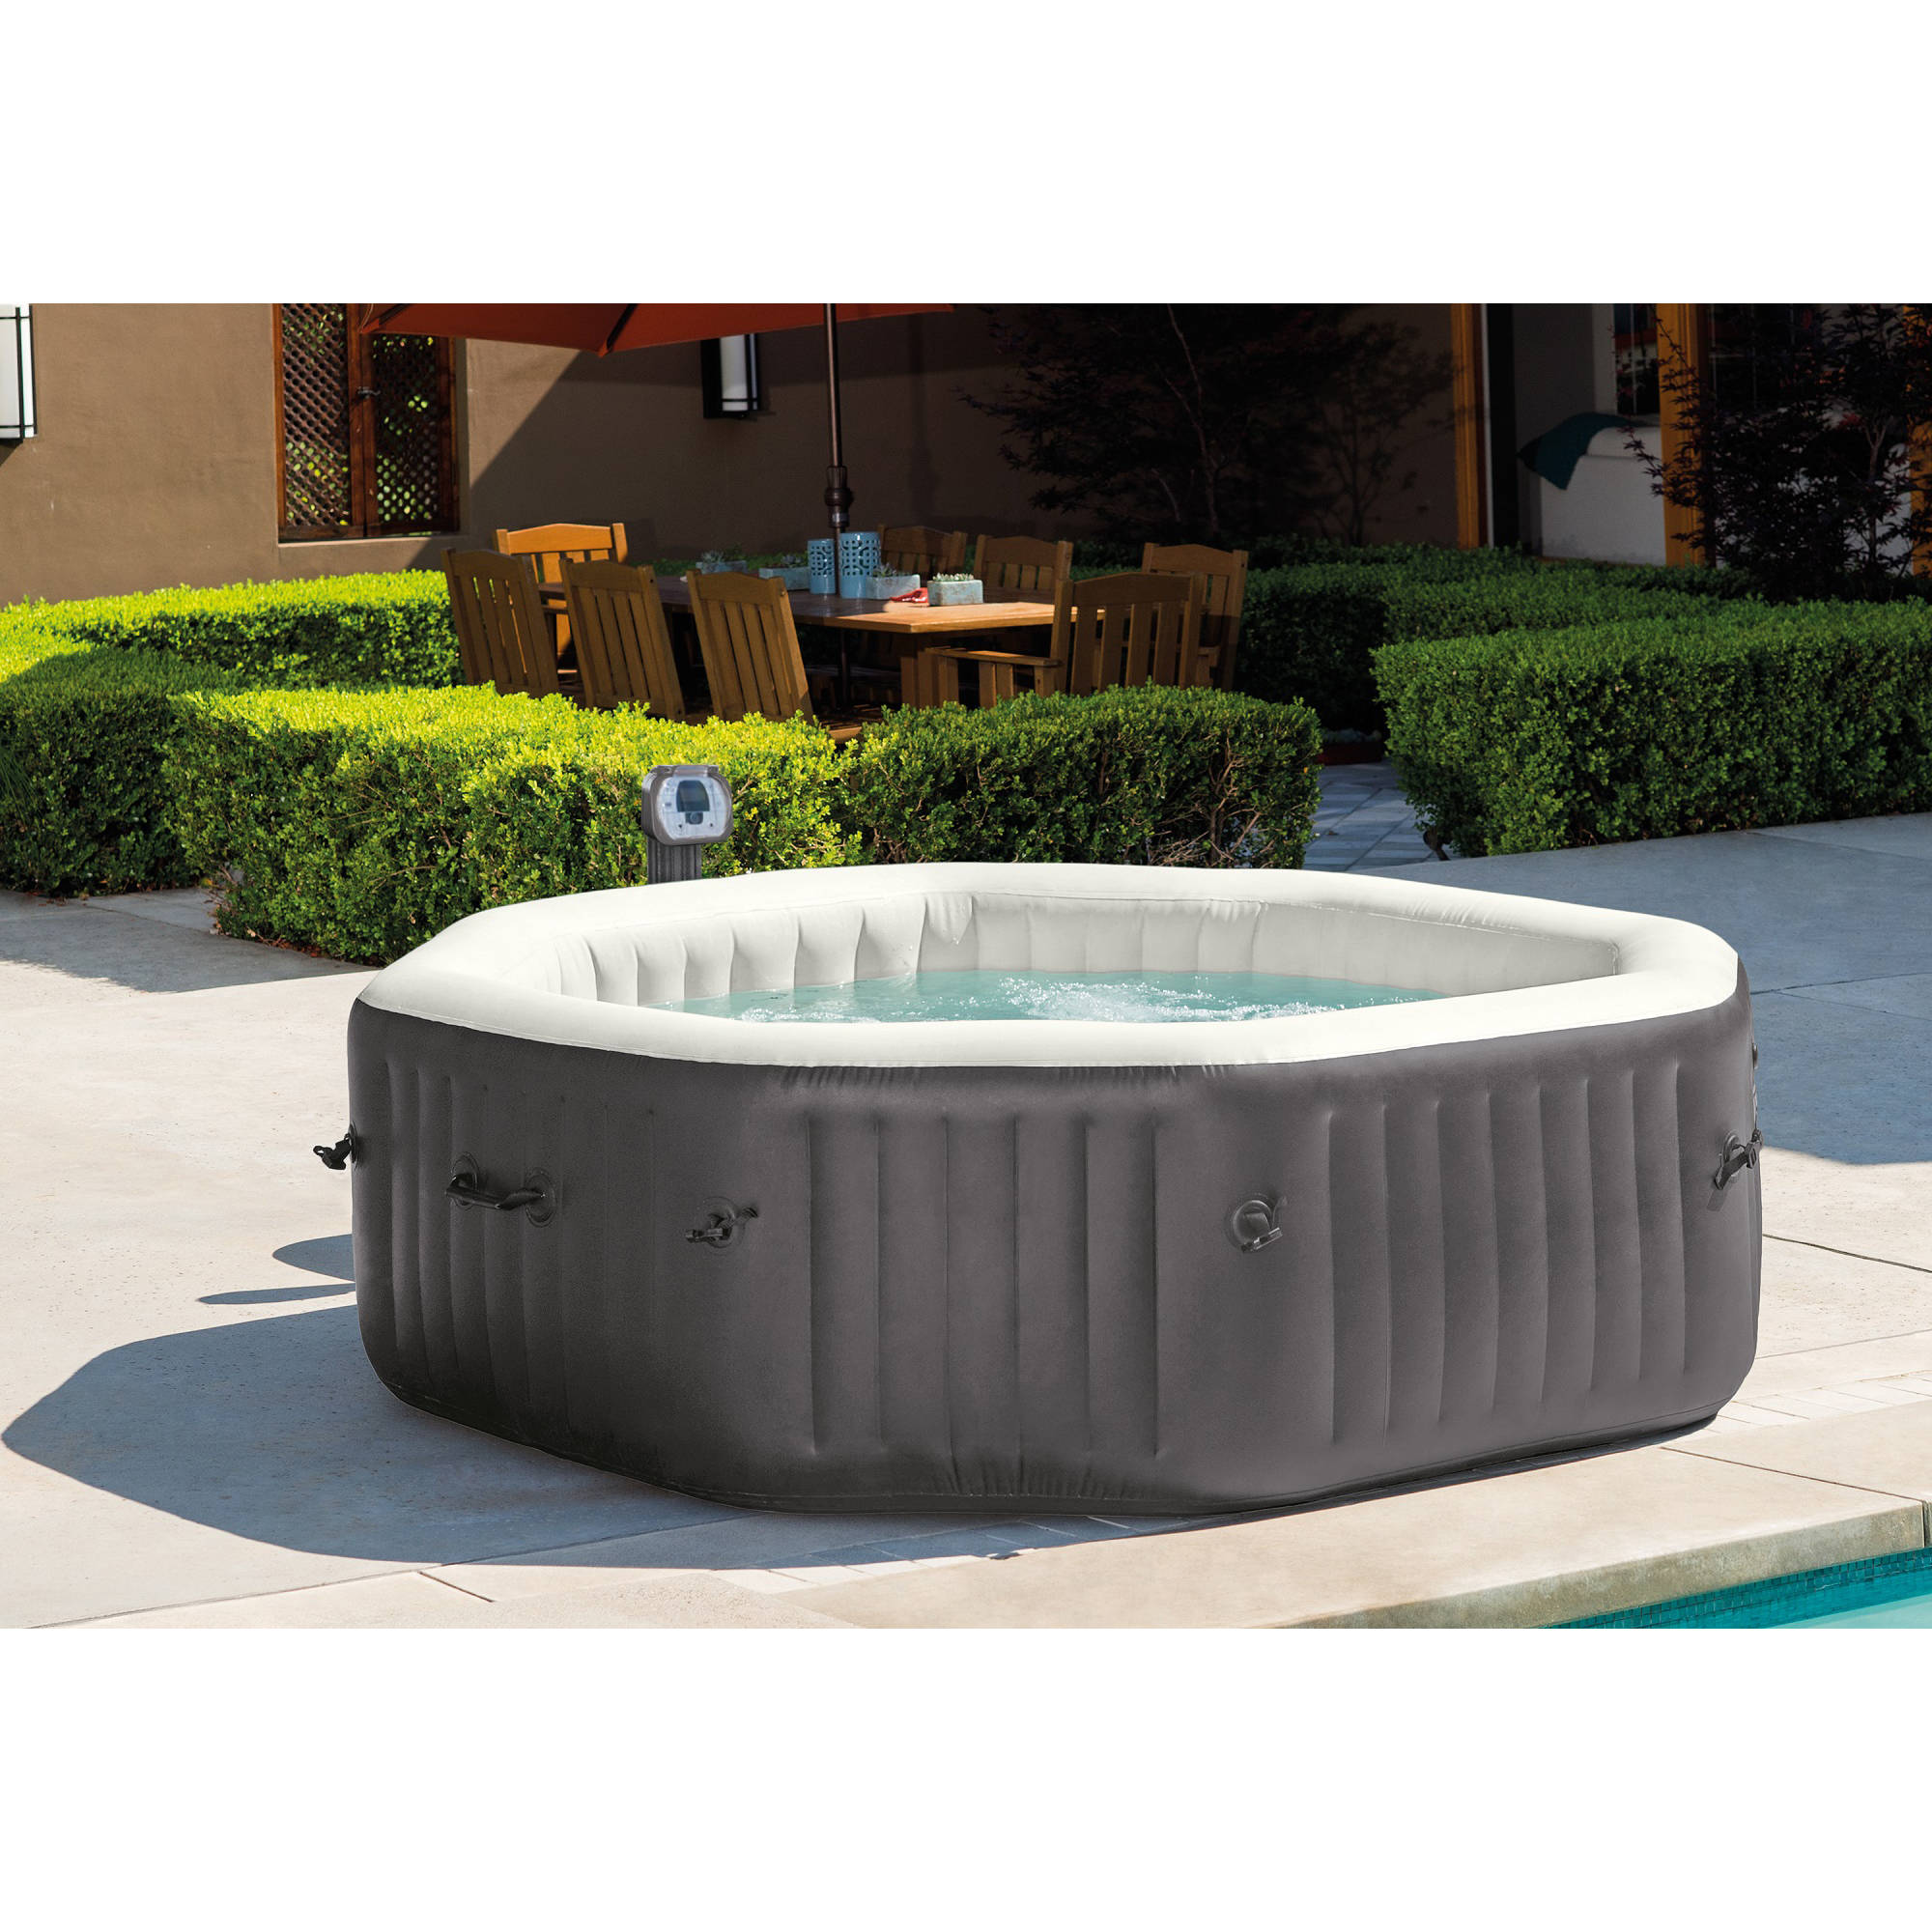 Intex 140 Bubble Jets 6Person Octagonal Portable Inflatable Hot Tub